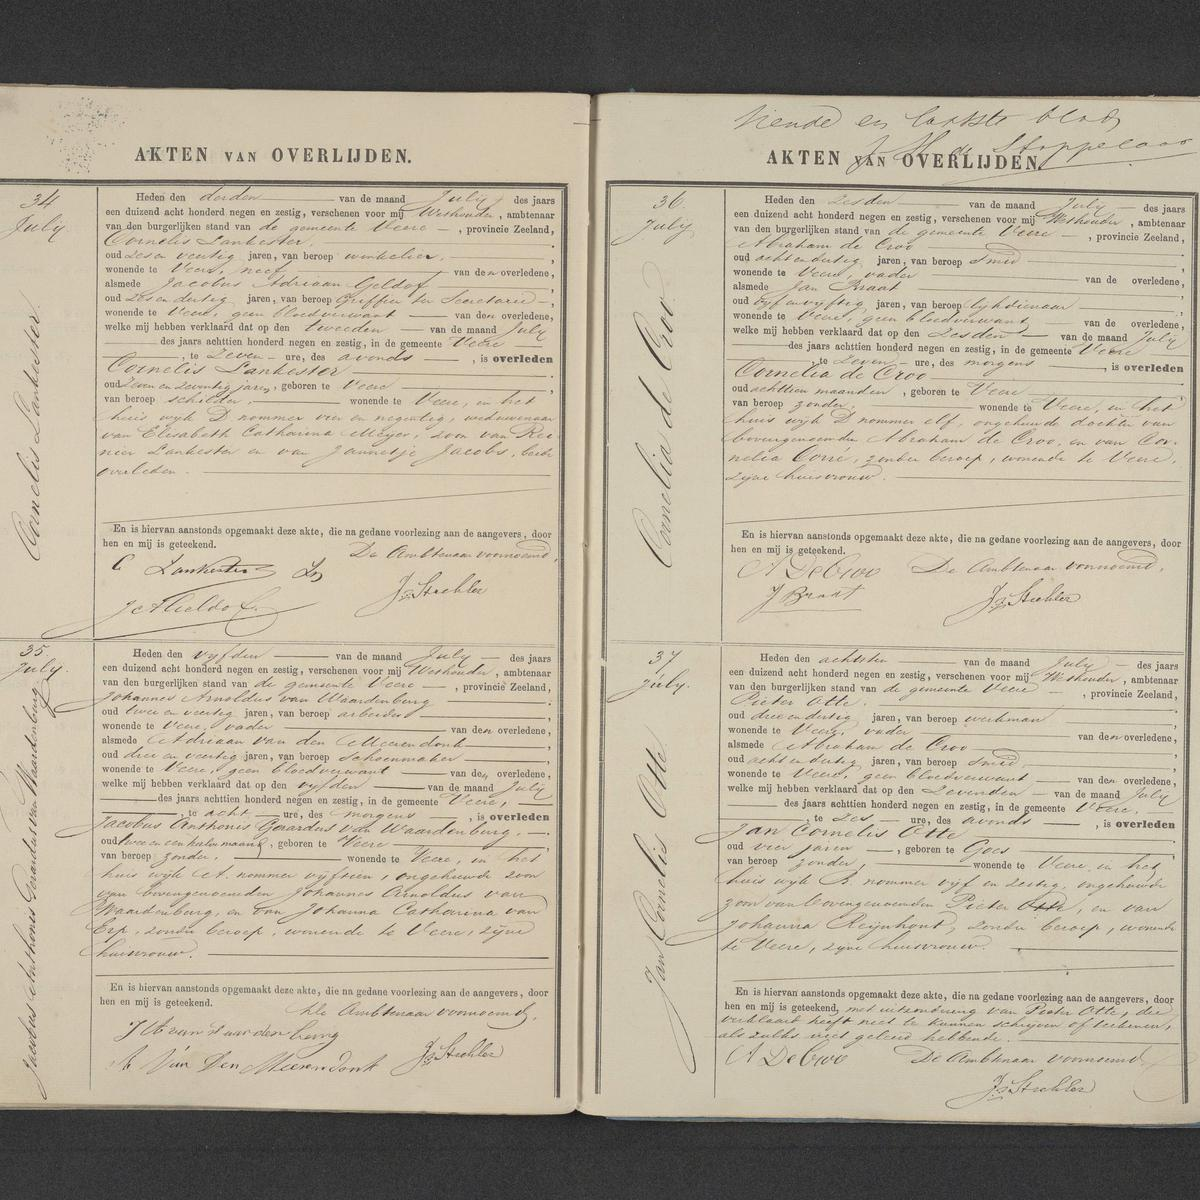 Civil registry of deaths, Veere, 1869, records 34-37